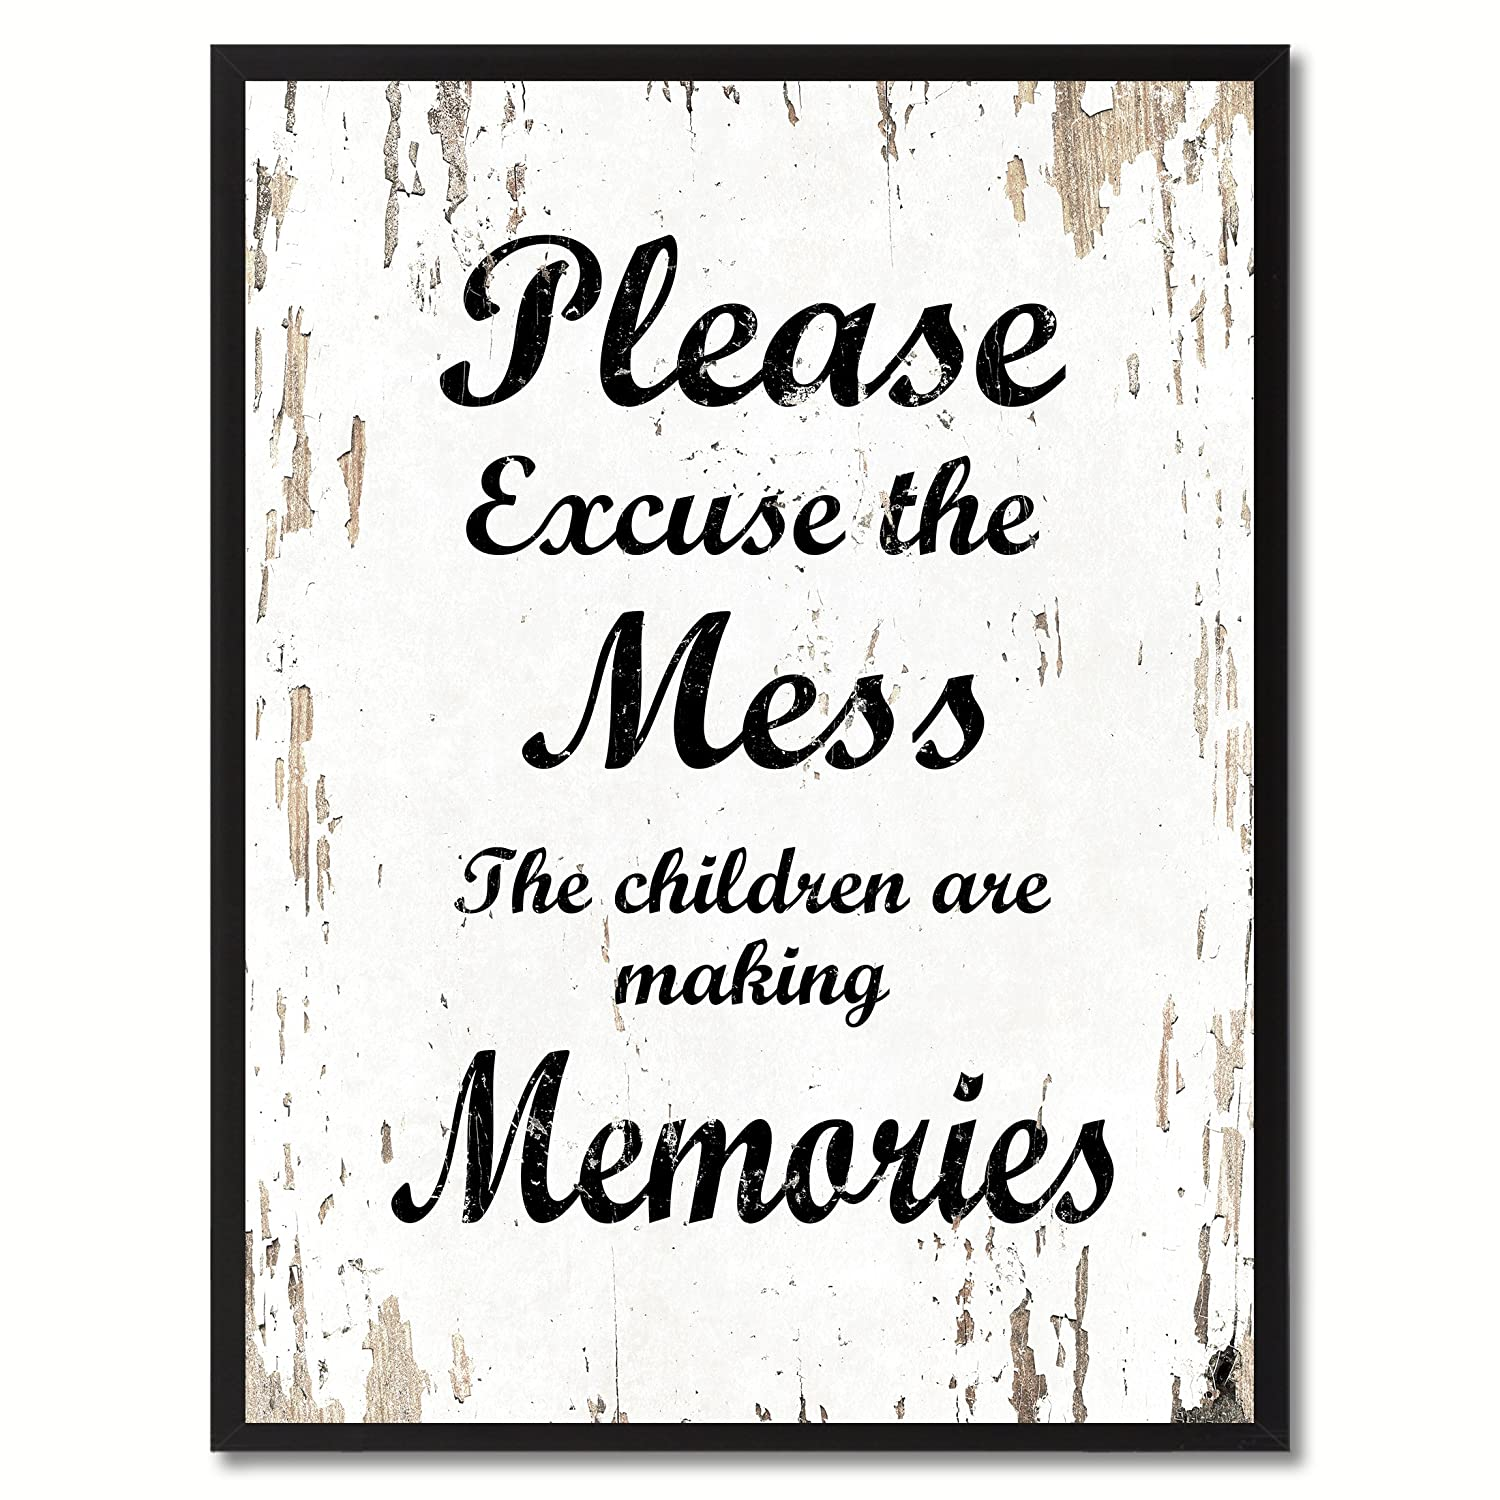 Please Excuse The Mess The Children Are Making Memories Saying White Wash Wood Frame Cottage Shabby Chic Gifts Home Decor Wall Art Canvas Print 7 x 9